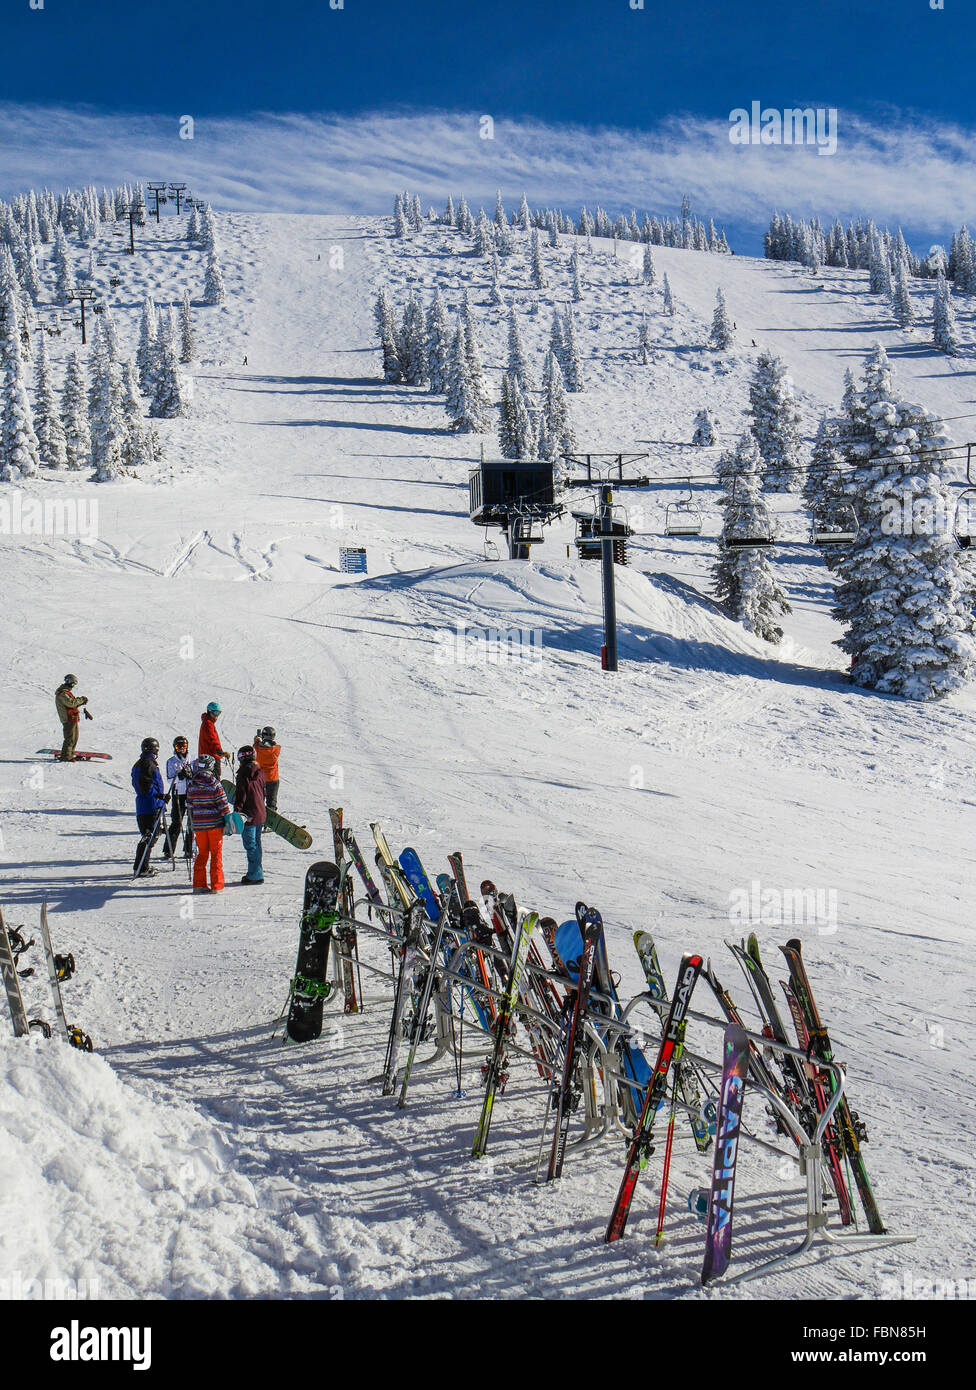 Racks of skis, Four Points Lodge, Steamboat Ski Resort, Steamboat Springs, Colorado. - Stock Image